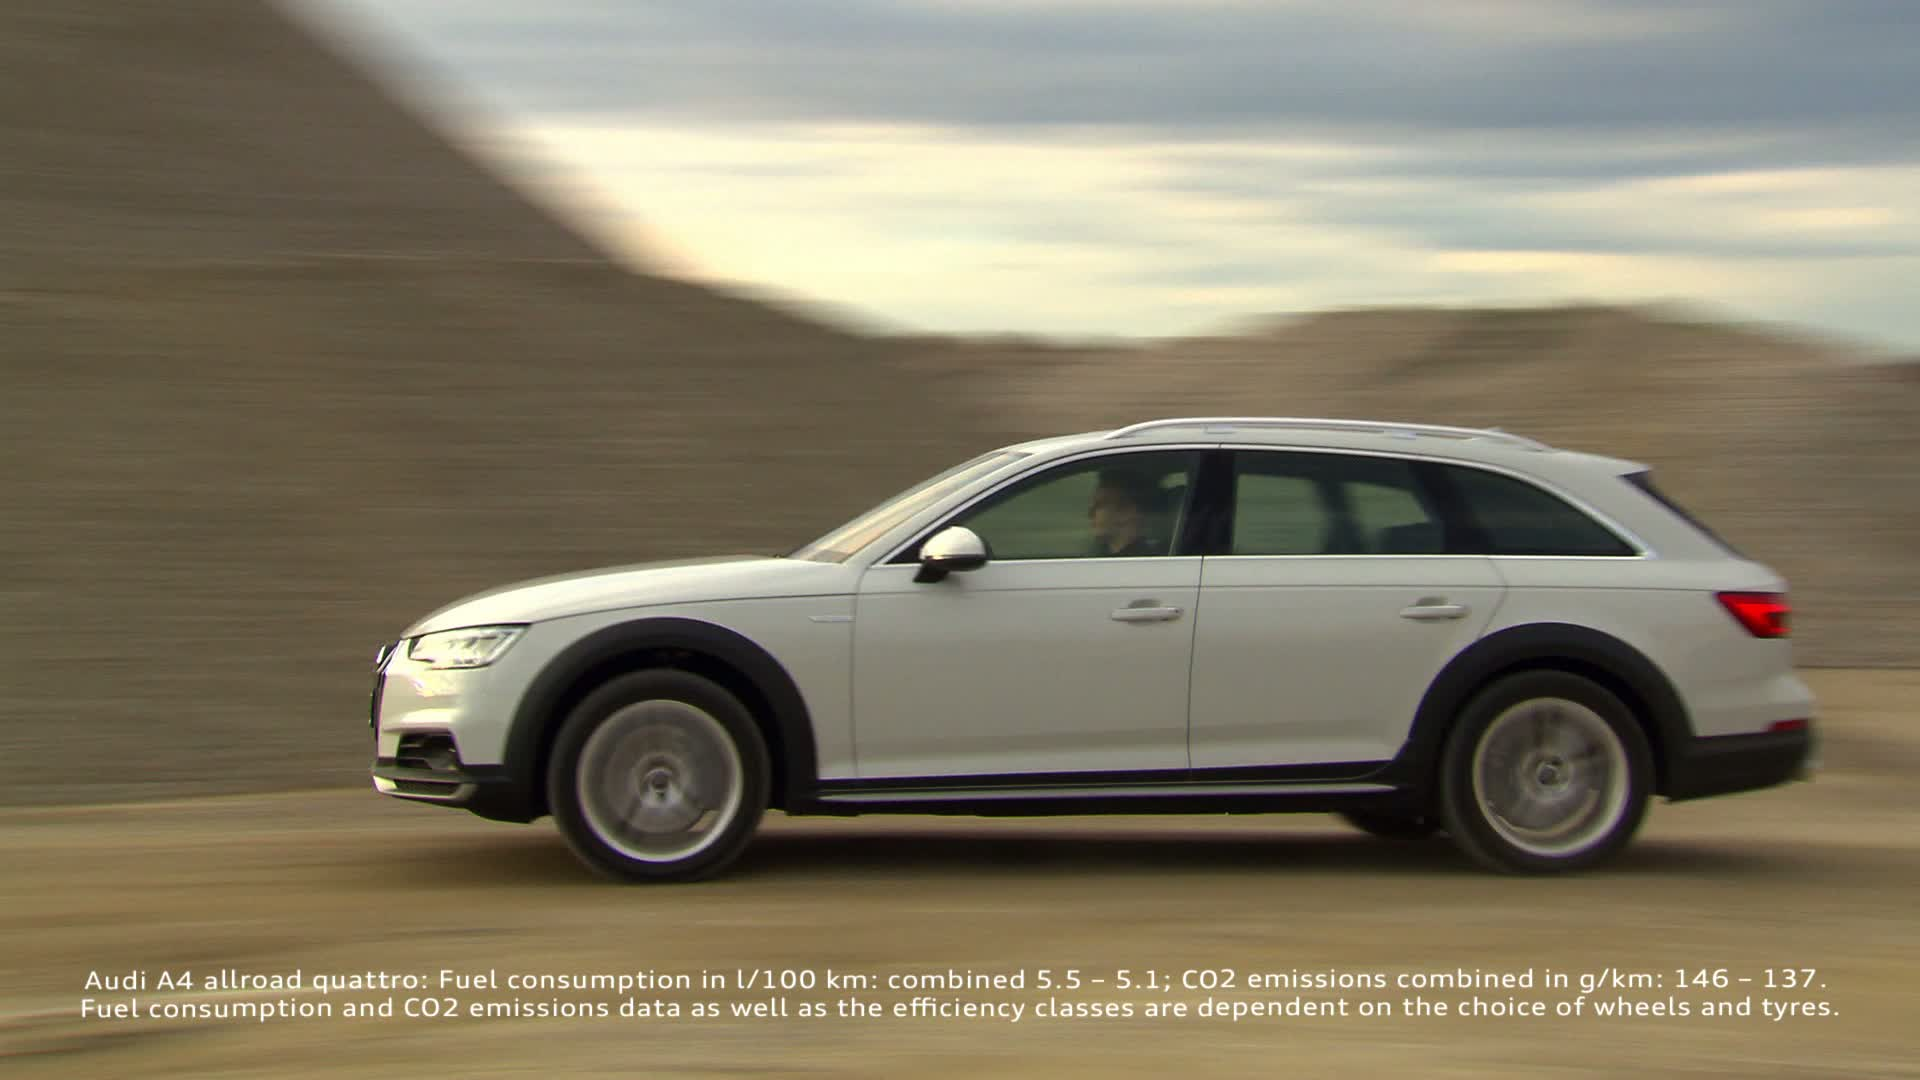 The new Audi A4 allroad quattro - all-round car with off-road capabilities